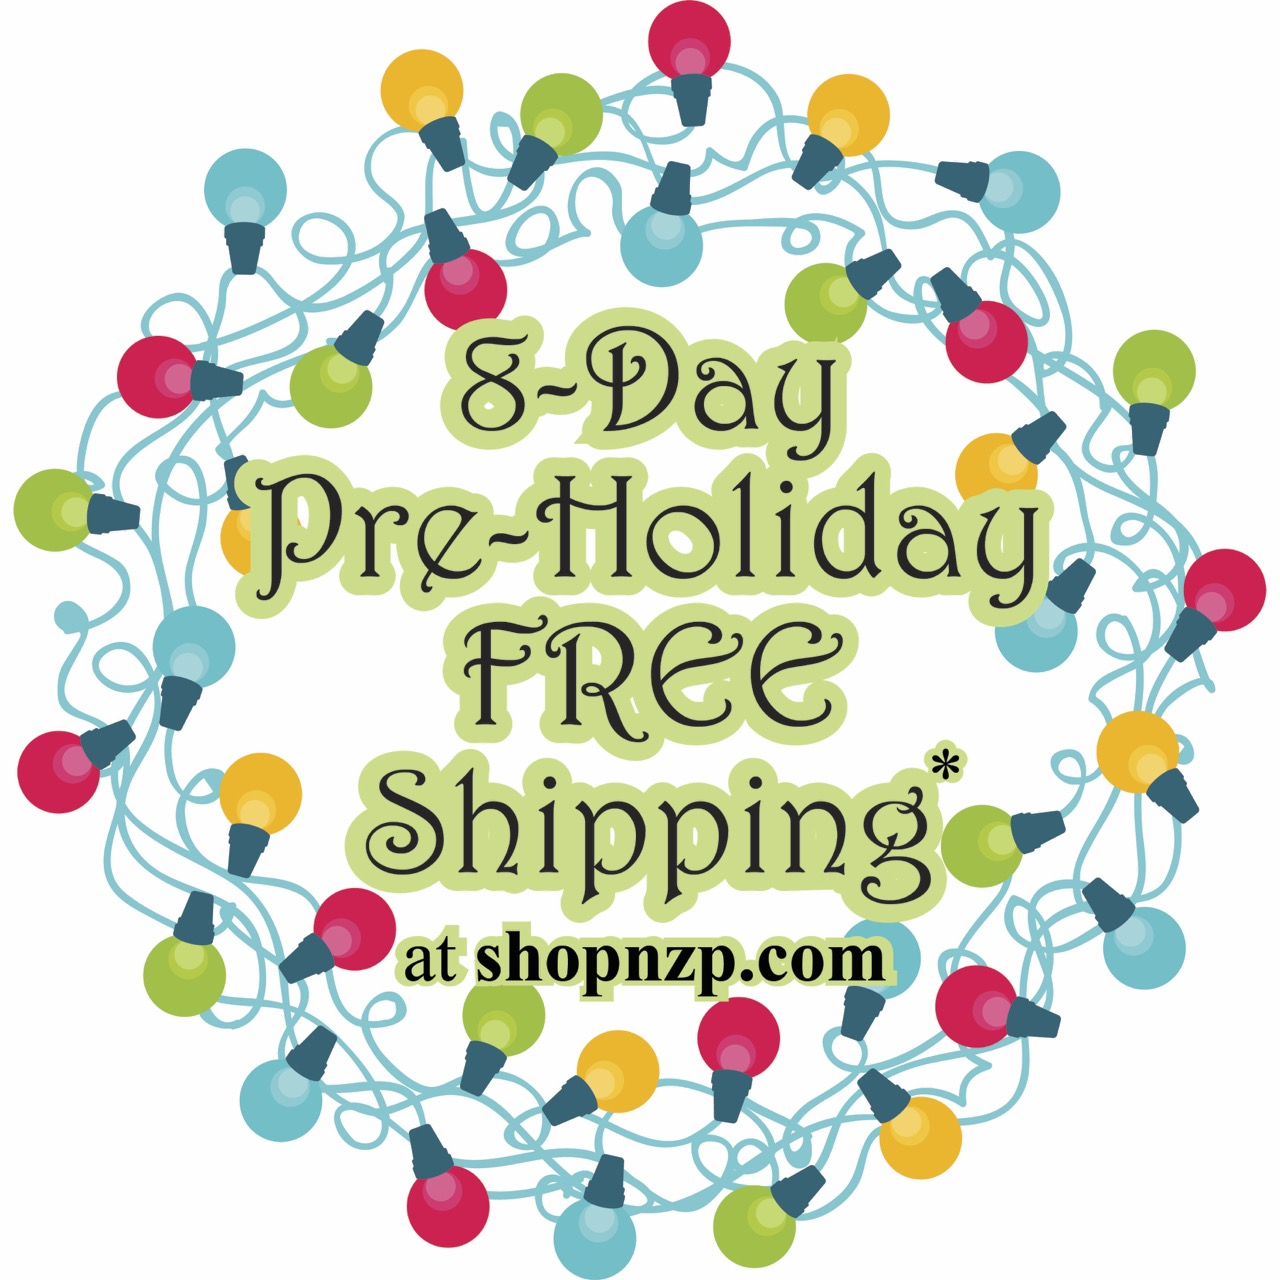 8-Day Pre-Holidays Sale Nov. 26 through Dec 3, 2019 at shopnzp.com. Save 10%-40% Off Select Sewing Products *plus FREE shipping. *Standard free shipping applies to US residents in the 48 contiguous states.